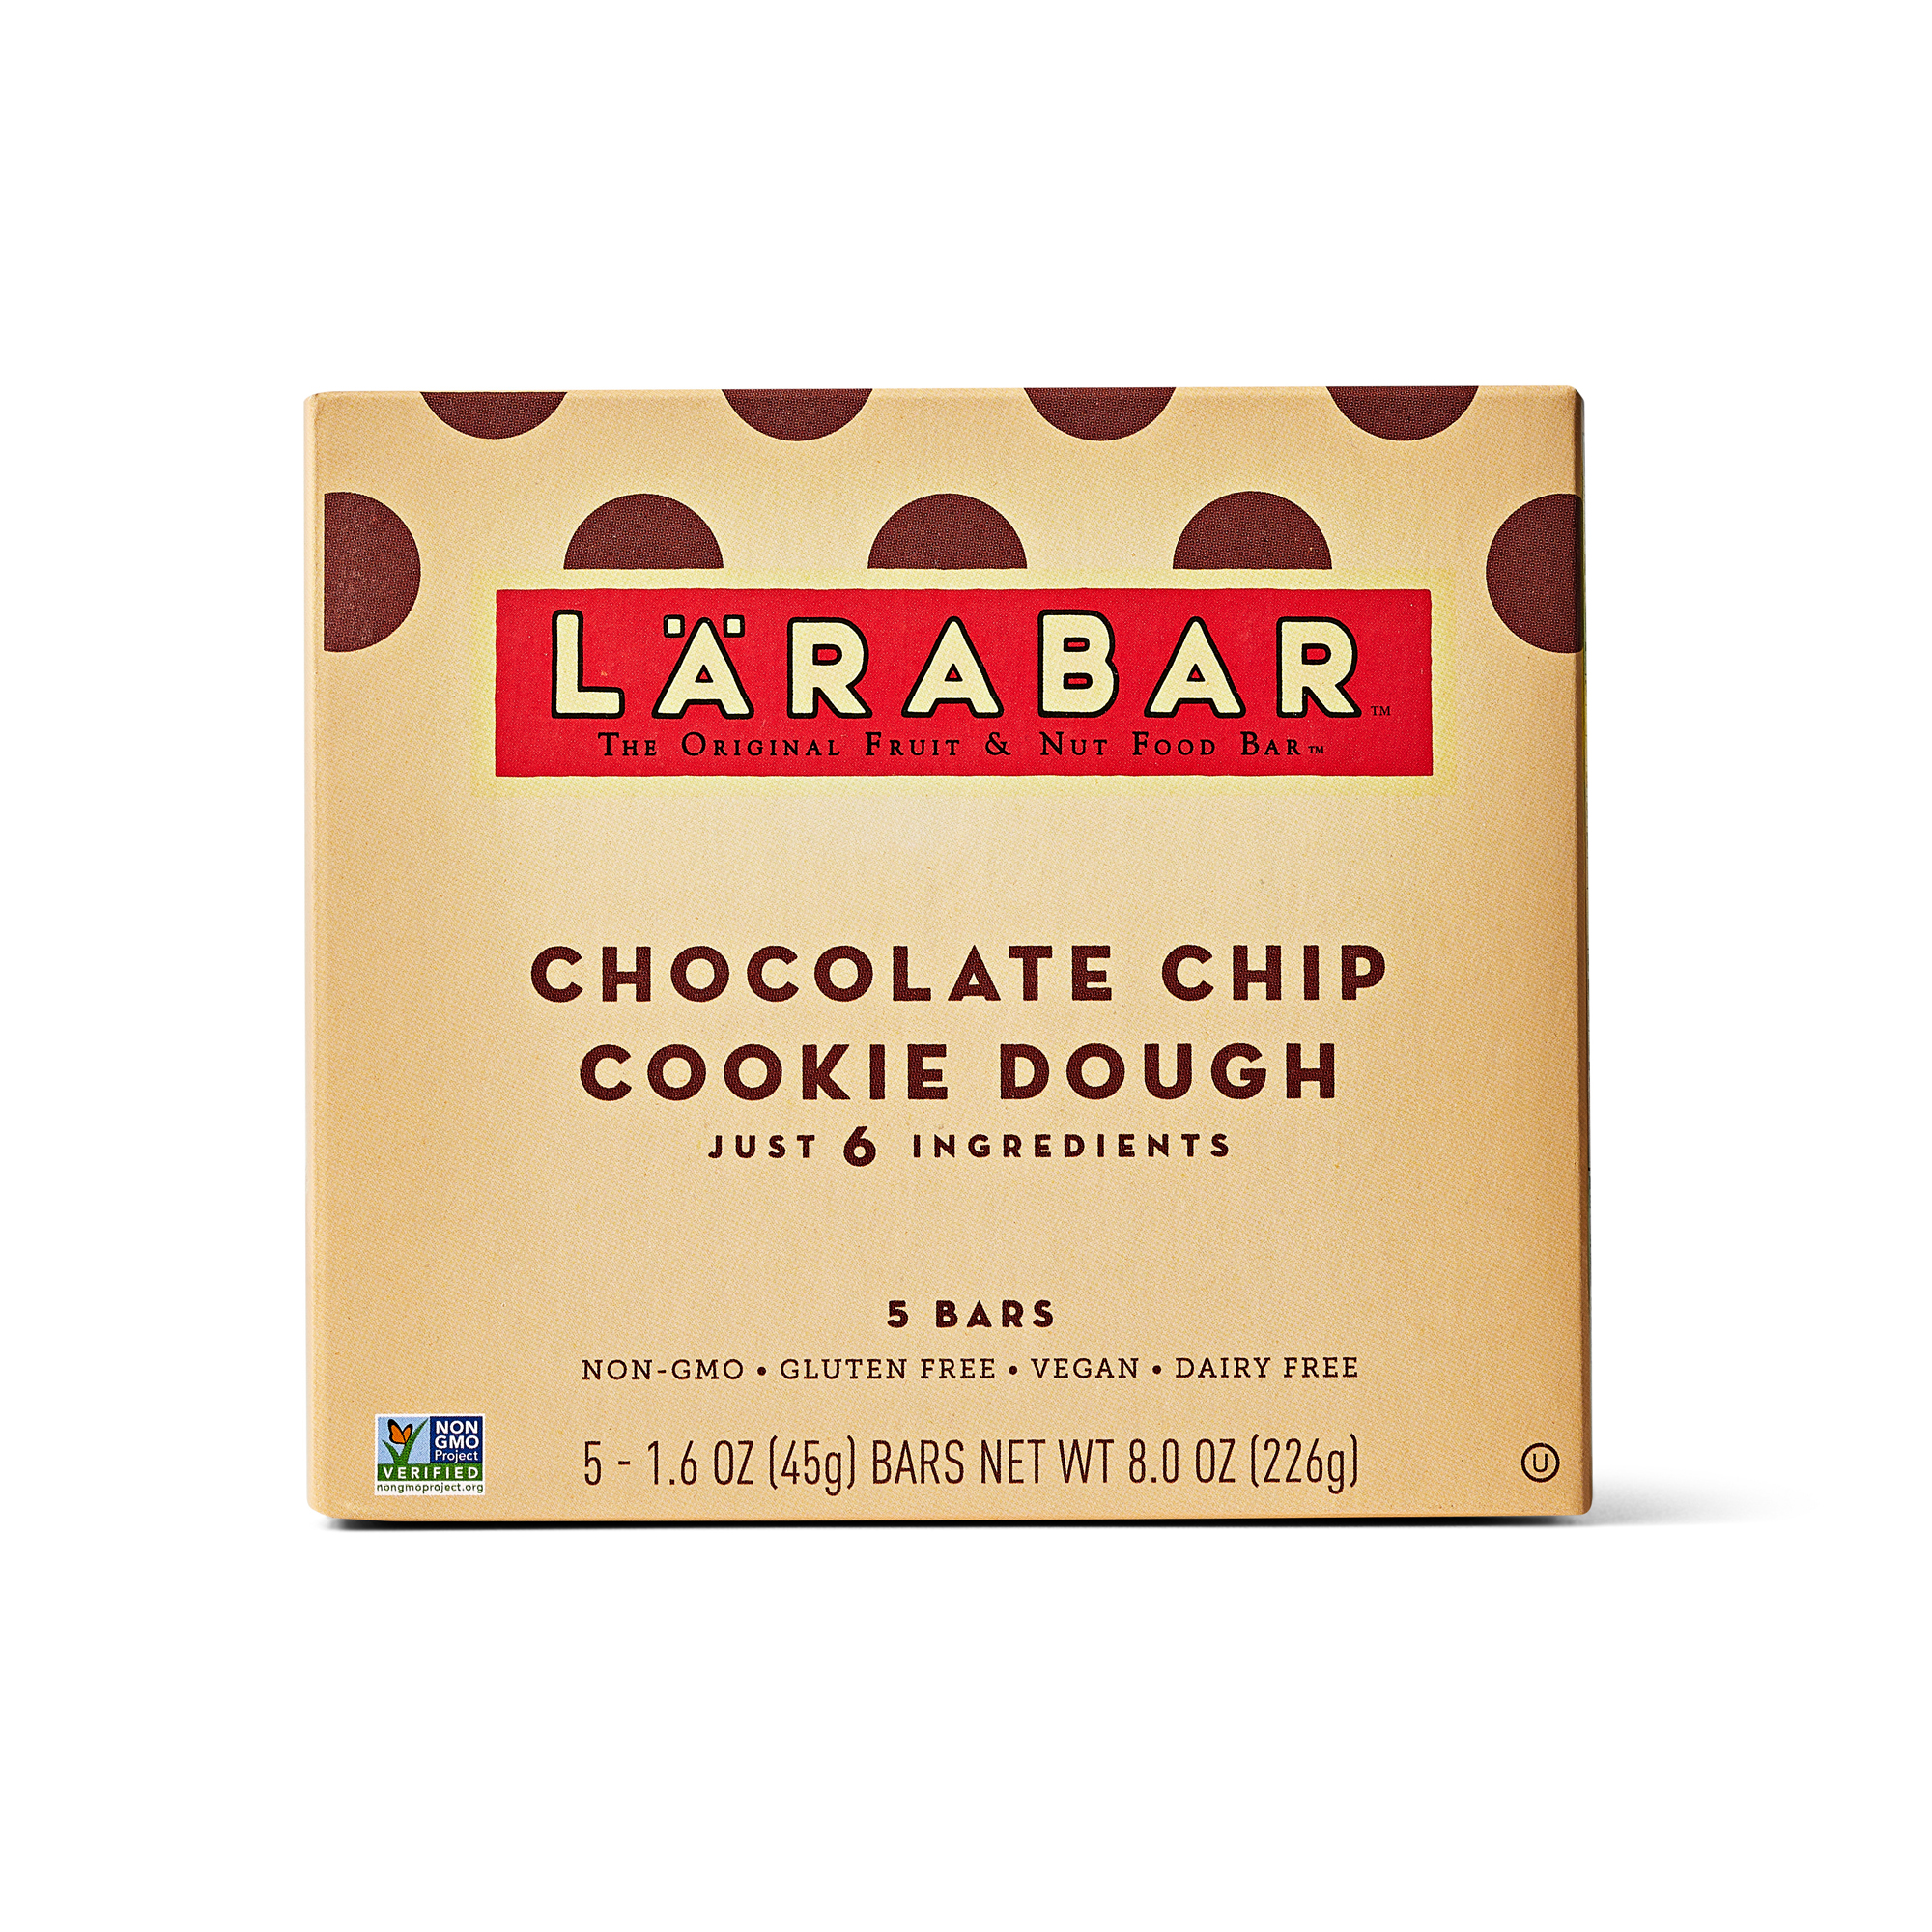 Larabar chocolate chip cookie dough